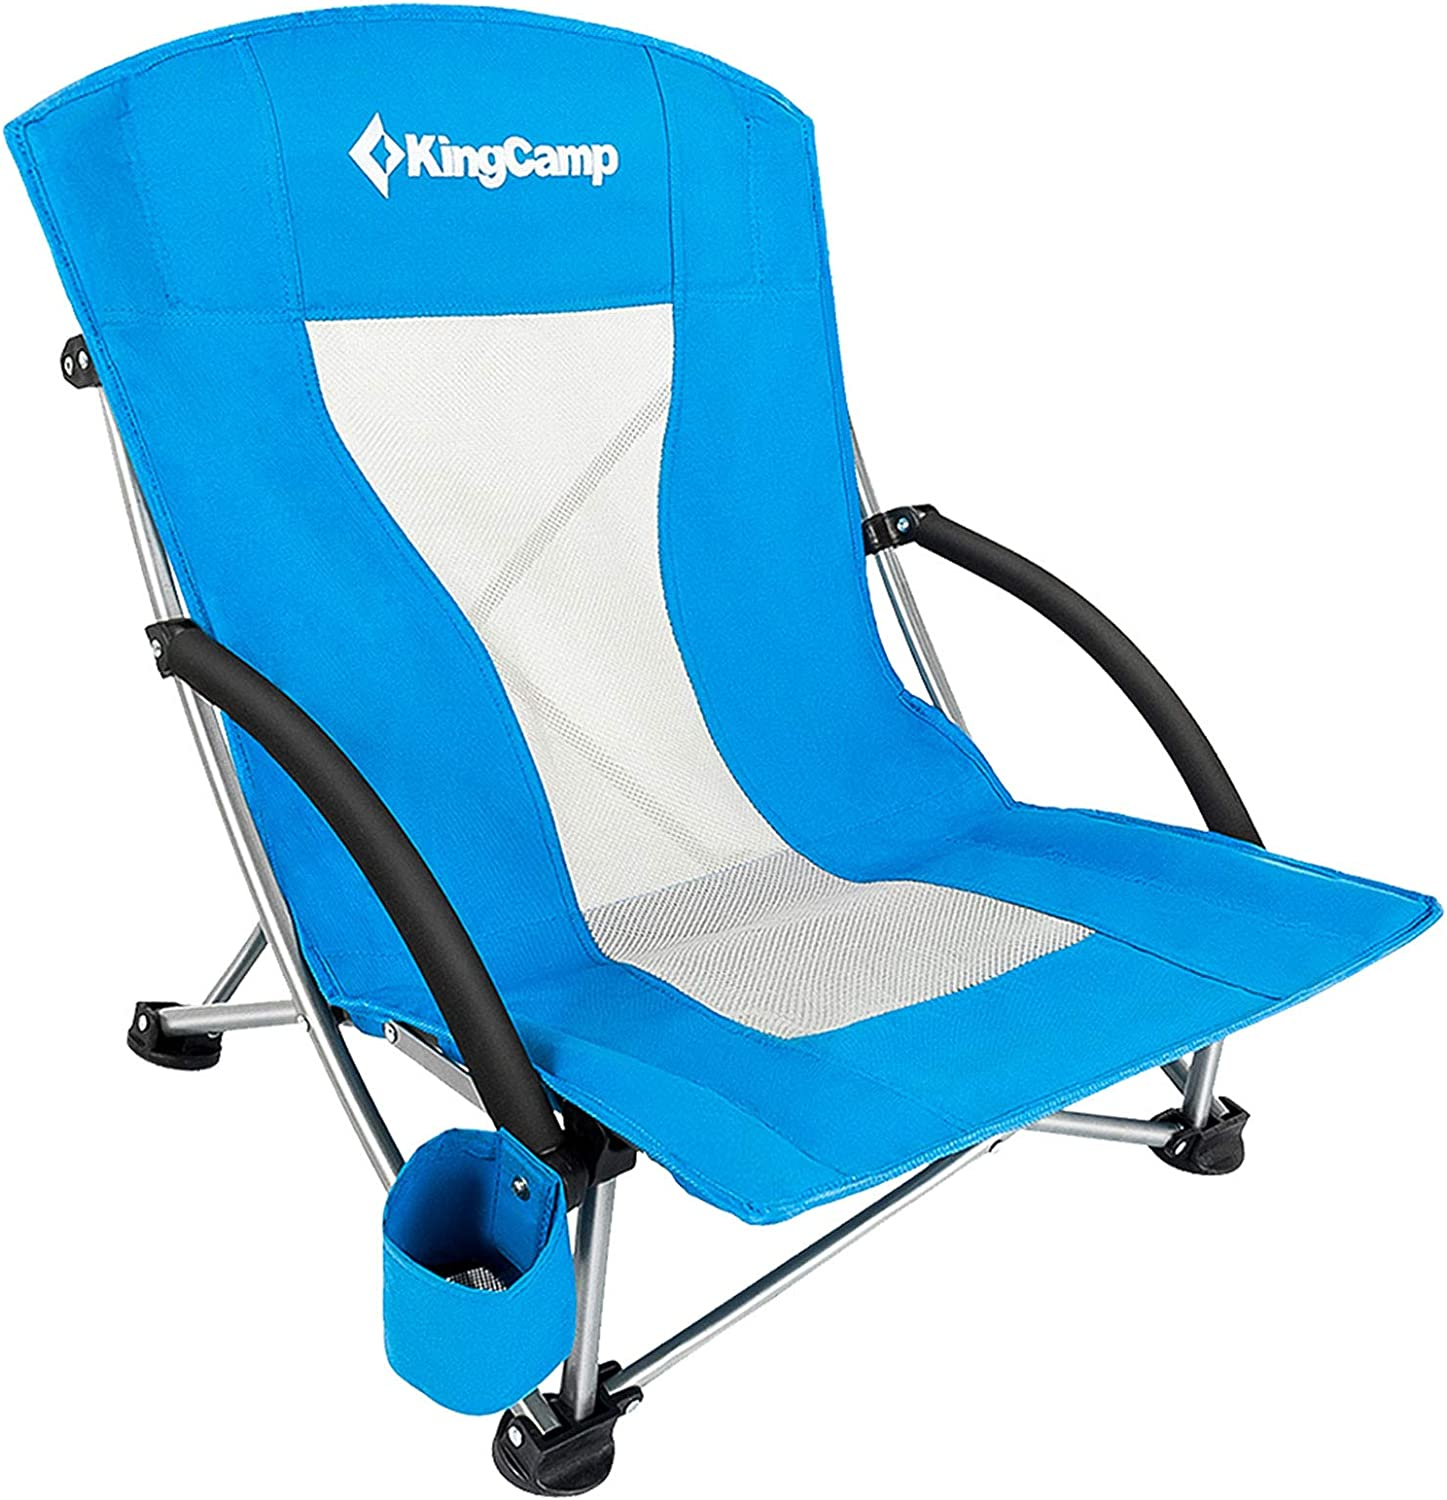 Amazon.com: KingCamp Low Seat Beach Chair, Outdoor Camping Folding Chair  with Cup Holder, 3 Colors : Everything Else